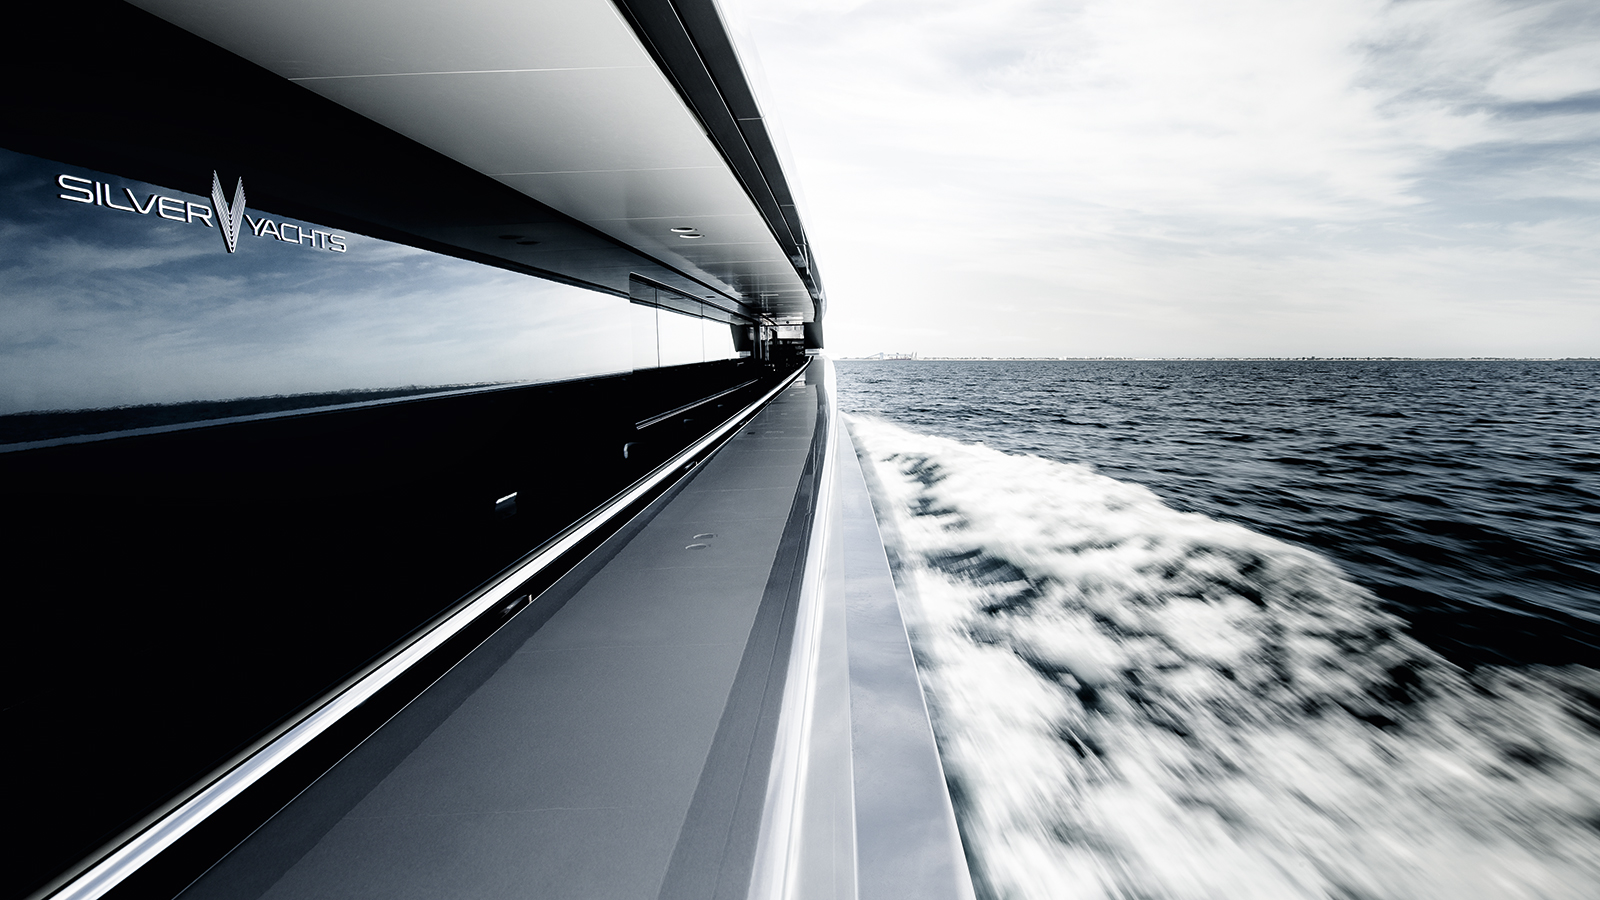 silver-fast-is-one-of-the-largest-yachts-in-the-burgess-fleet